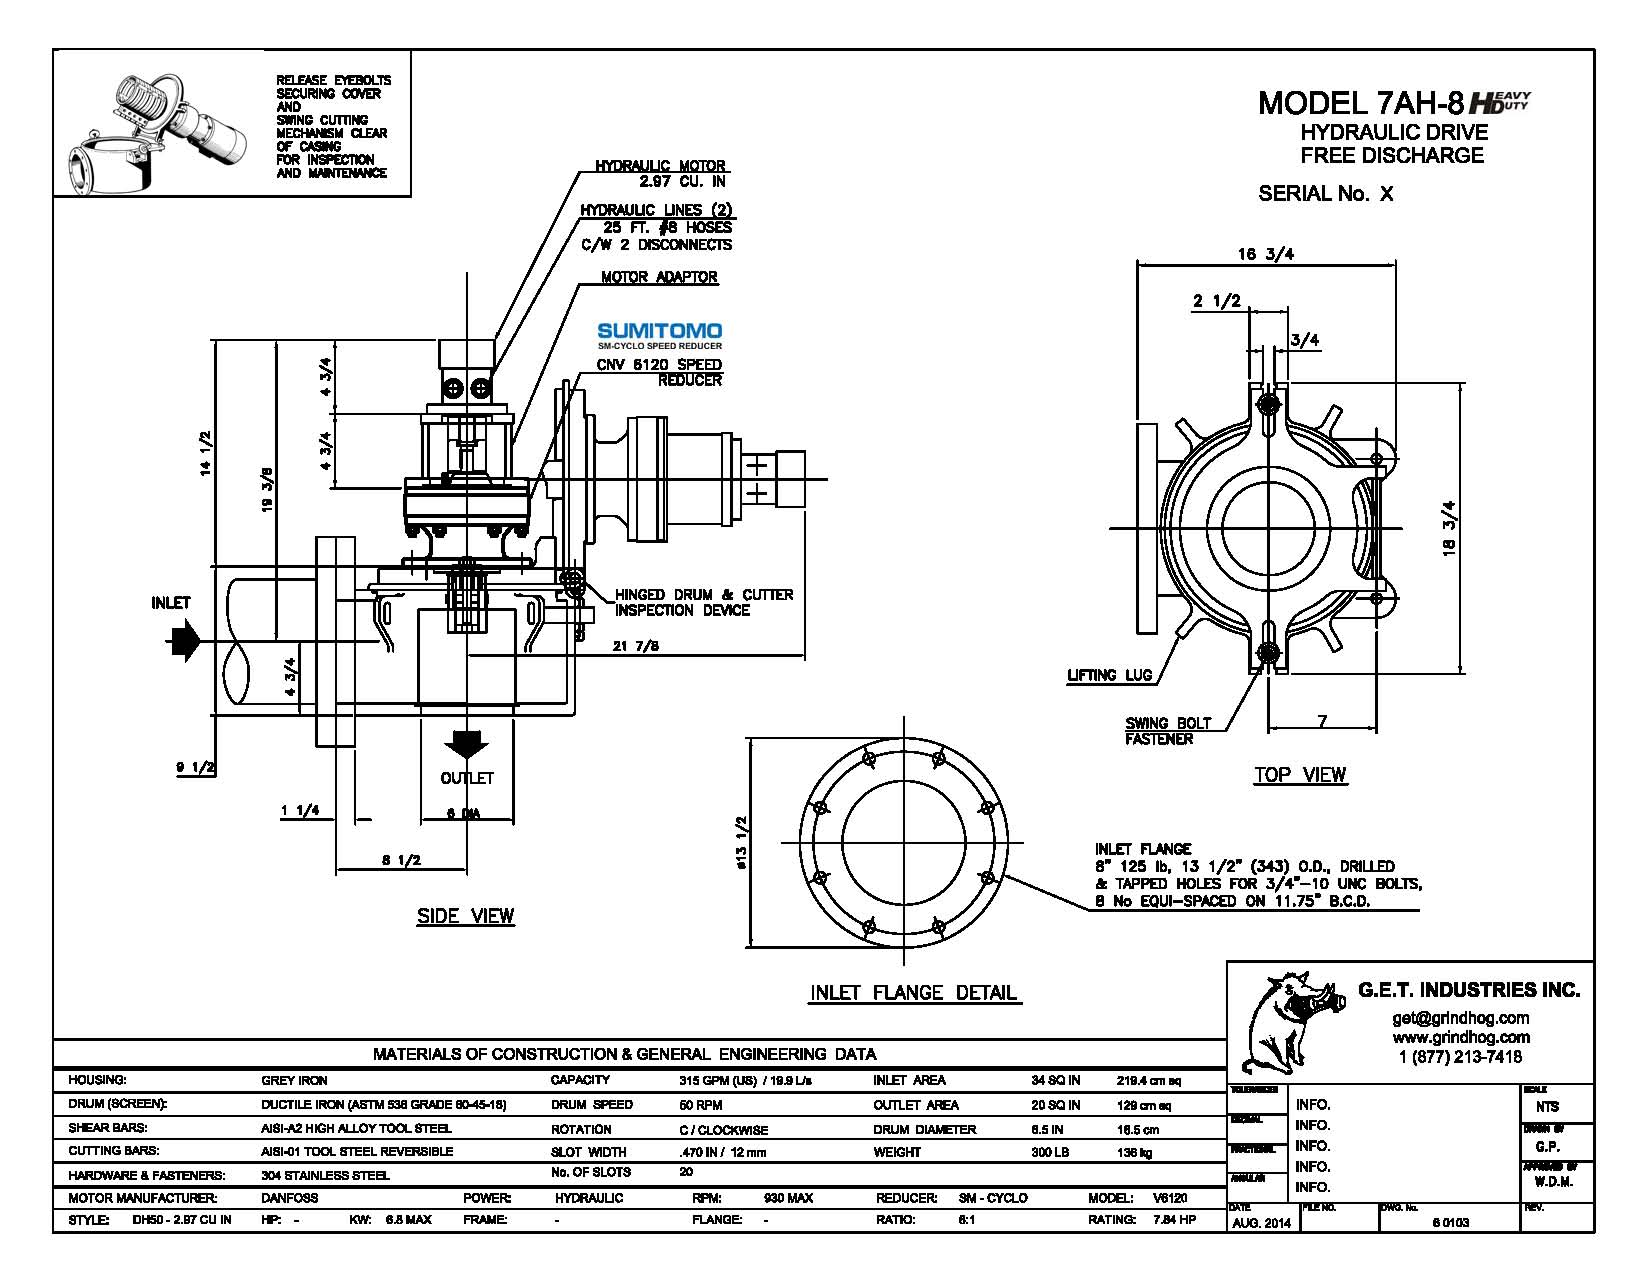 data drawing for Model 7AH-8